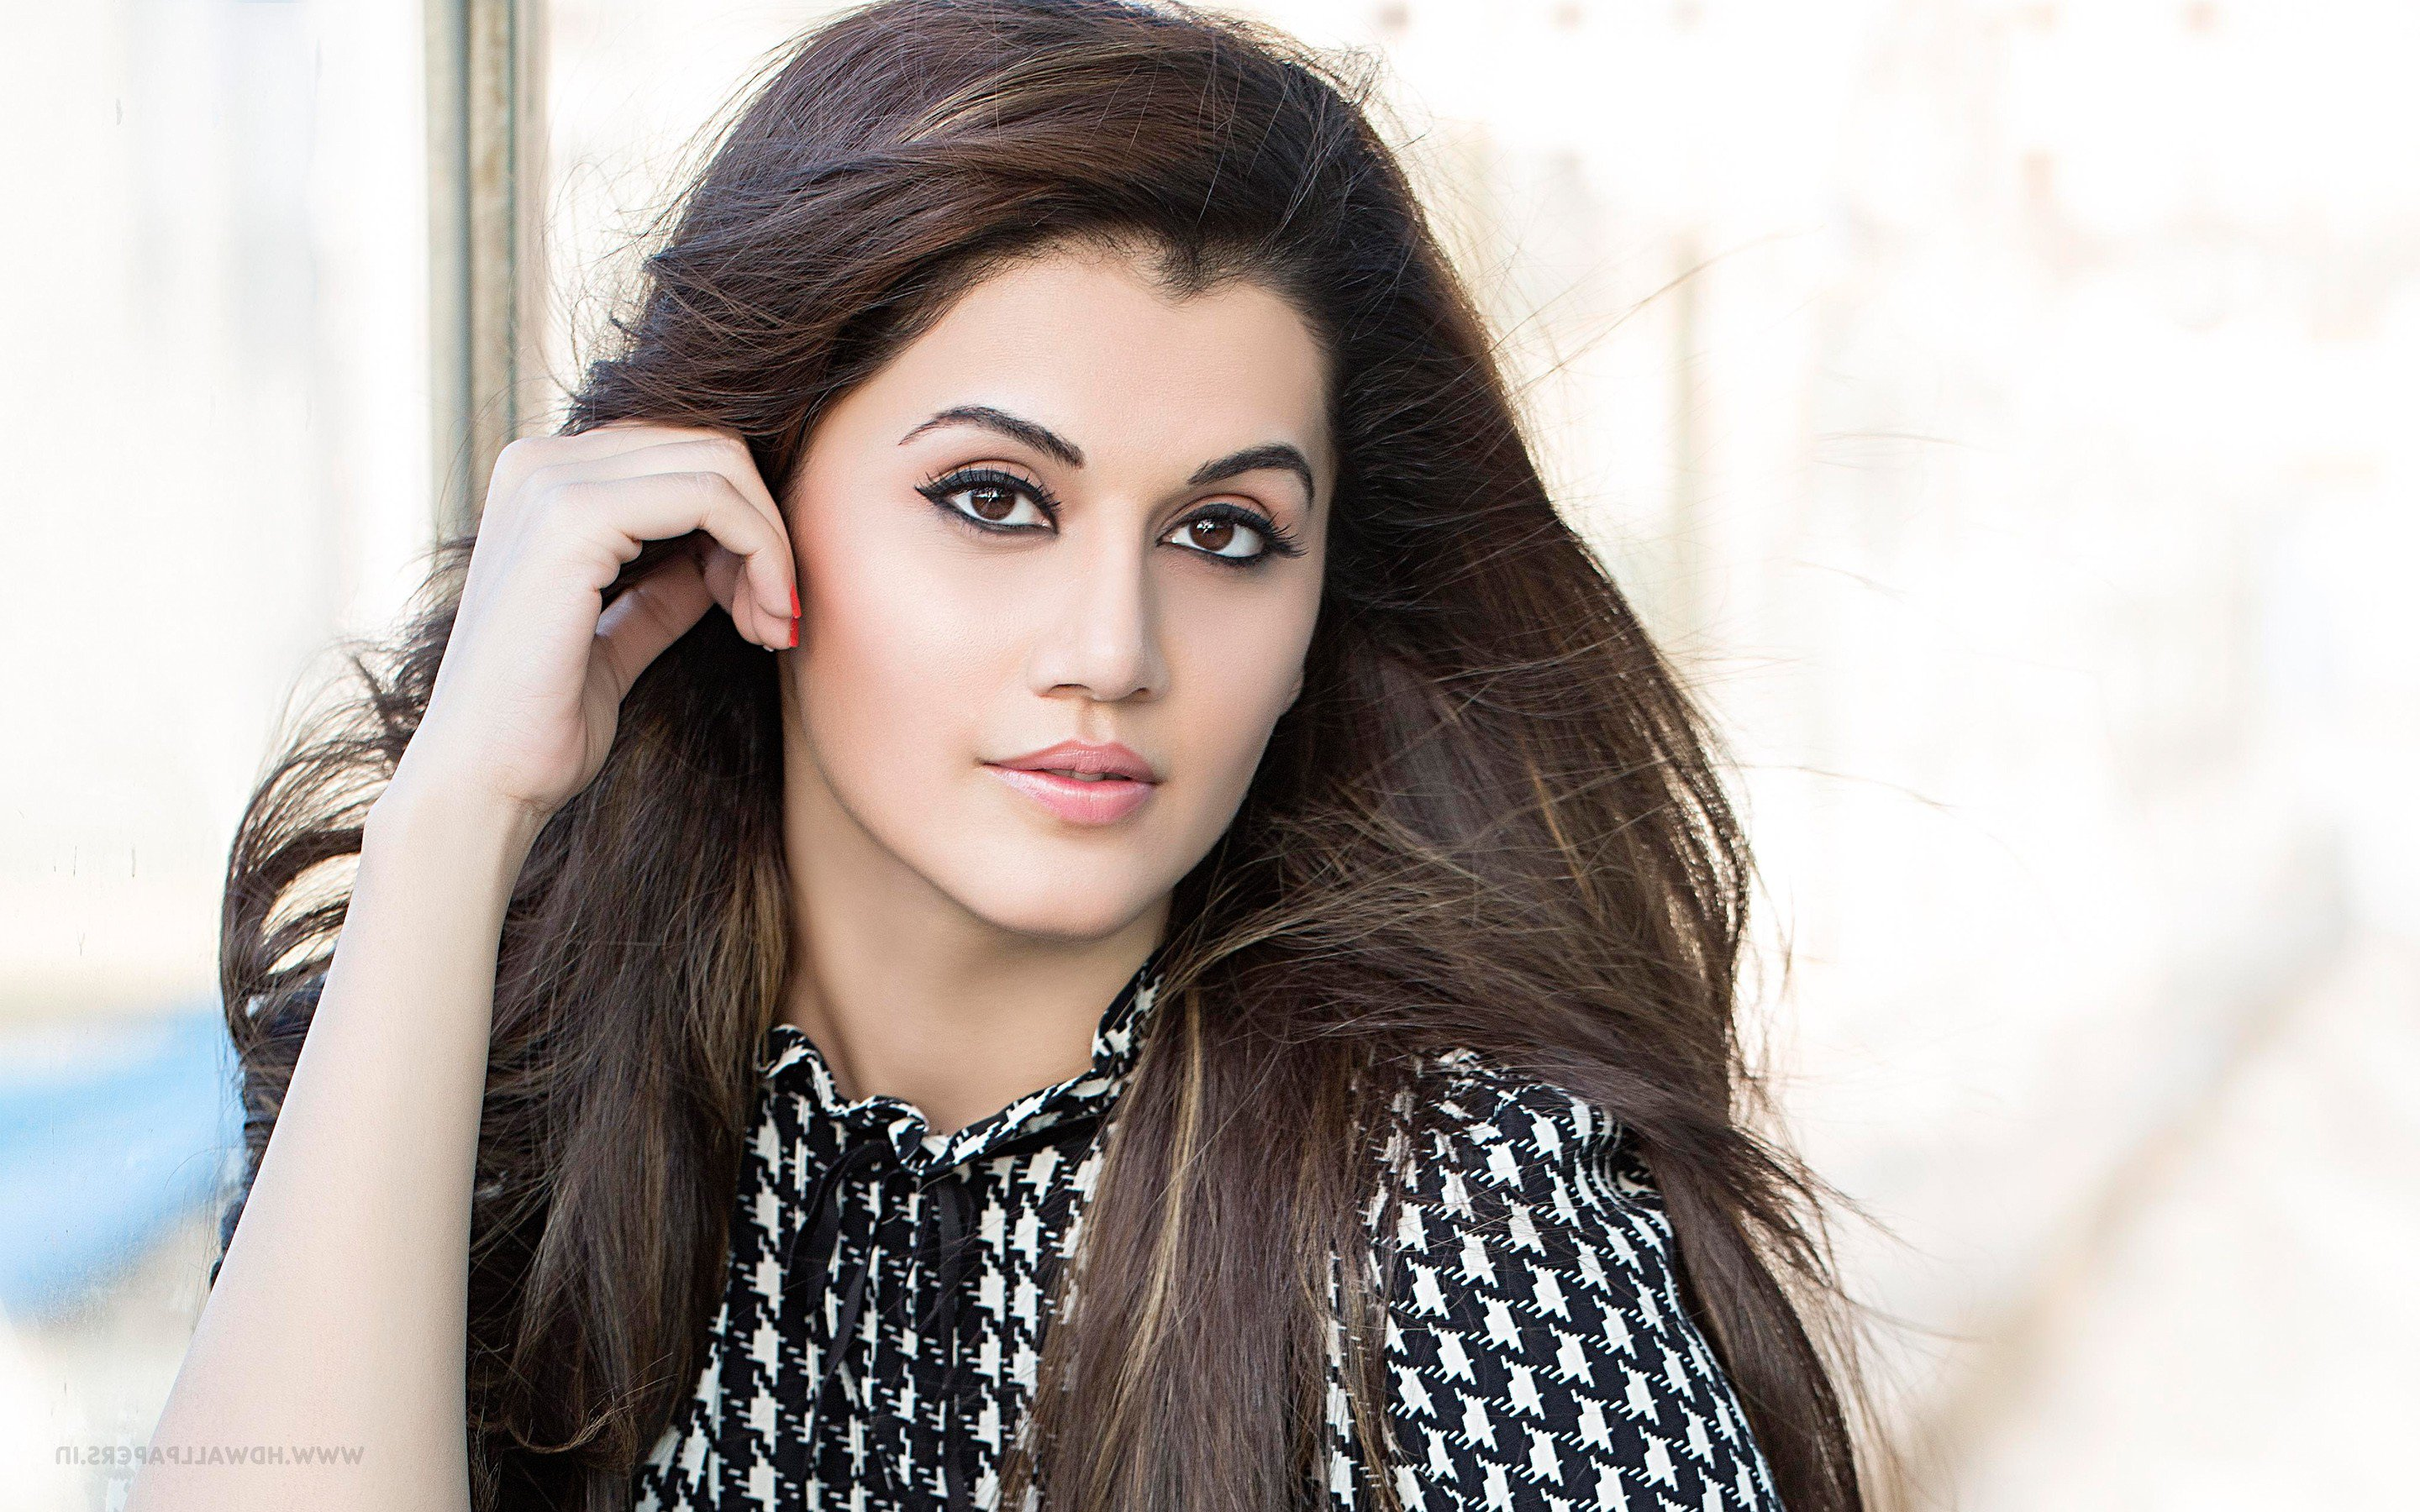 2880x1800 - Tapsee pannu Wallpapers 3